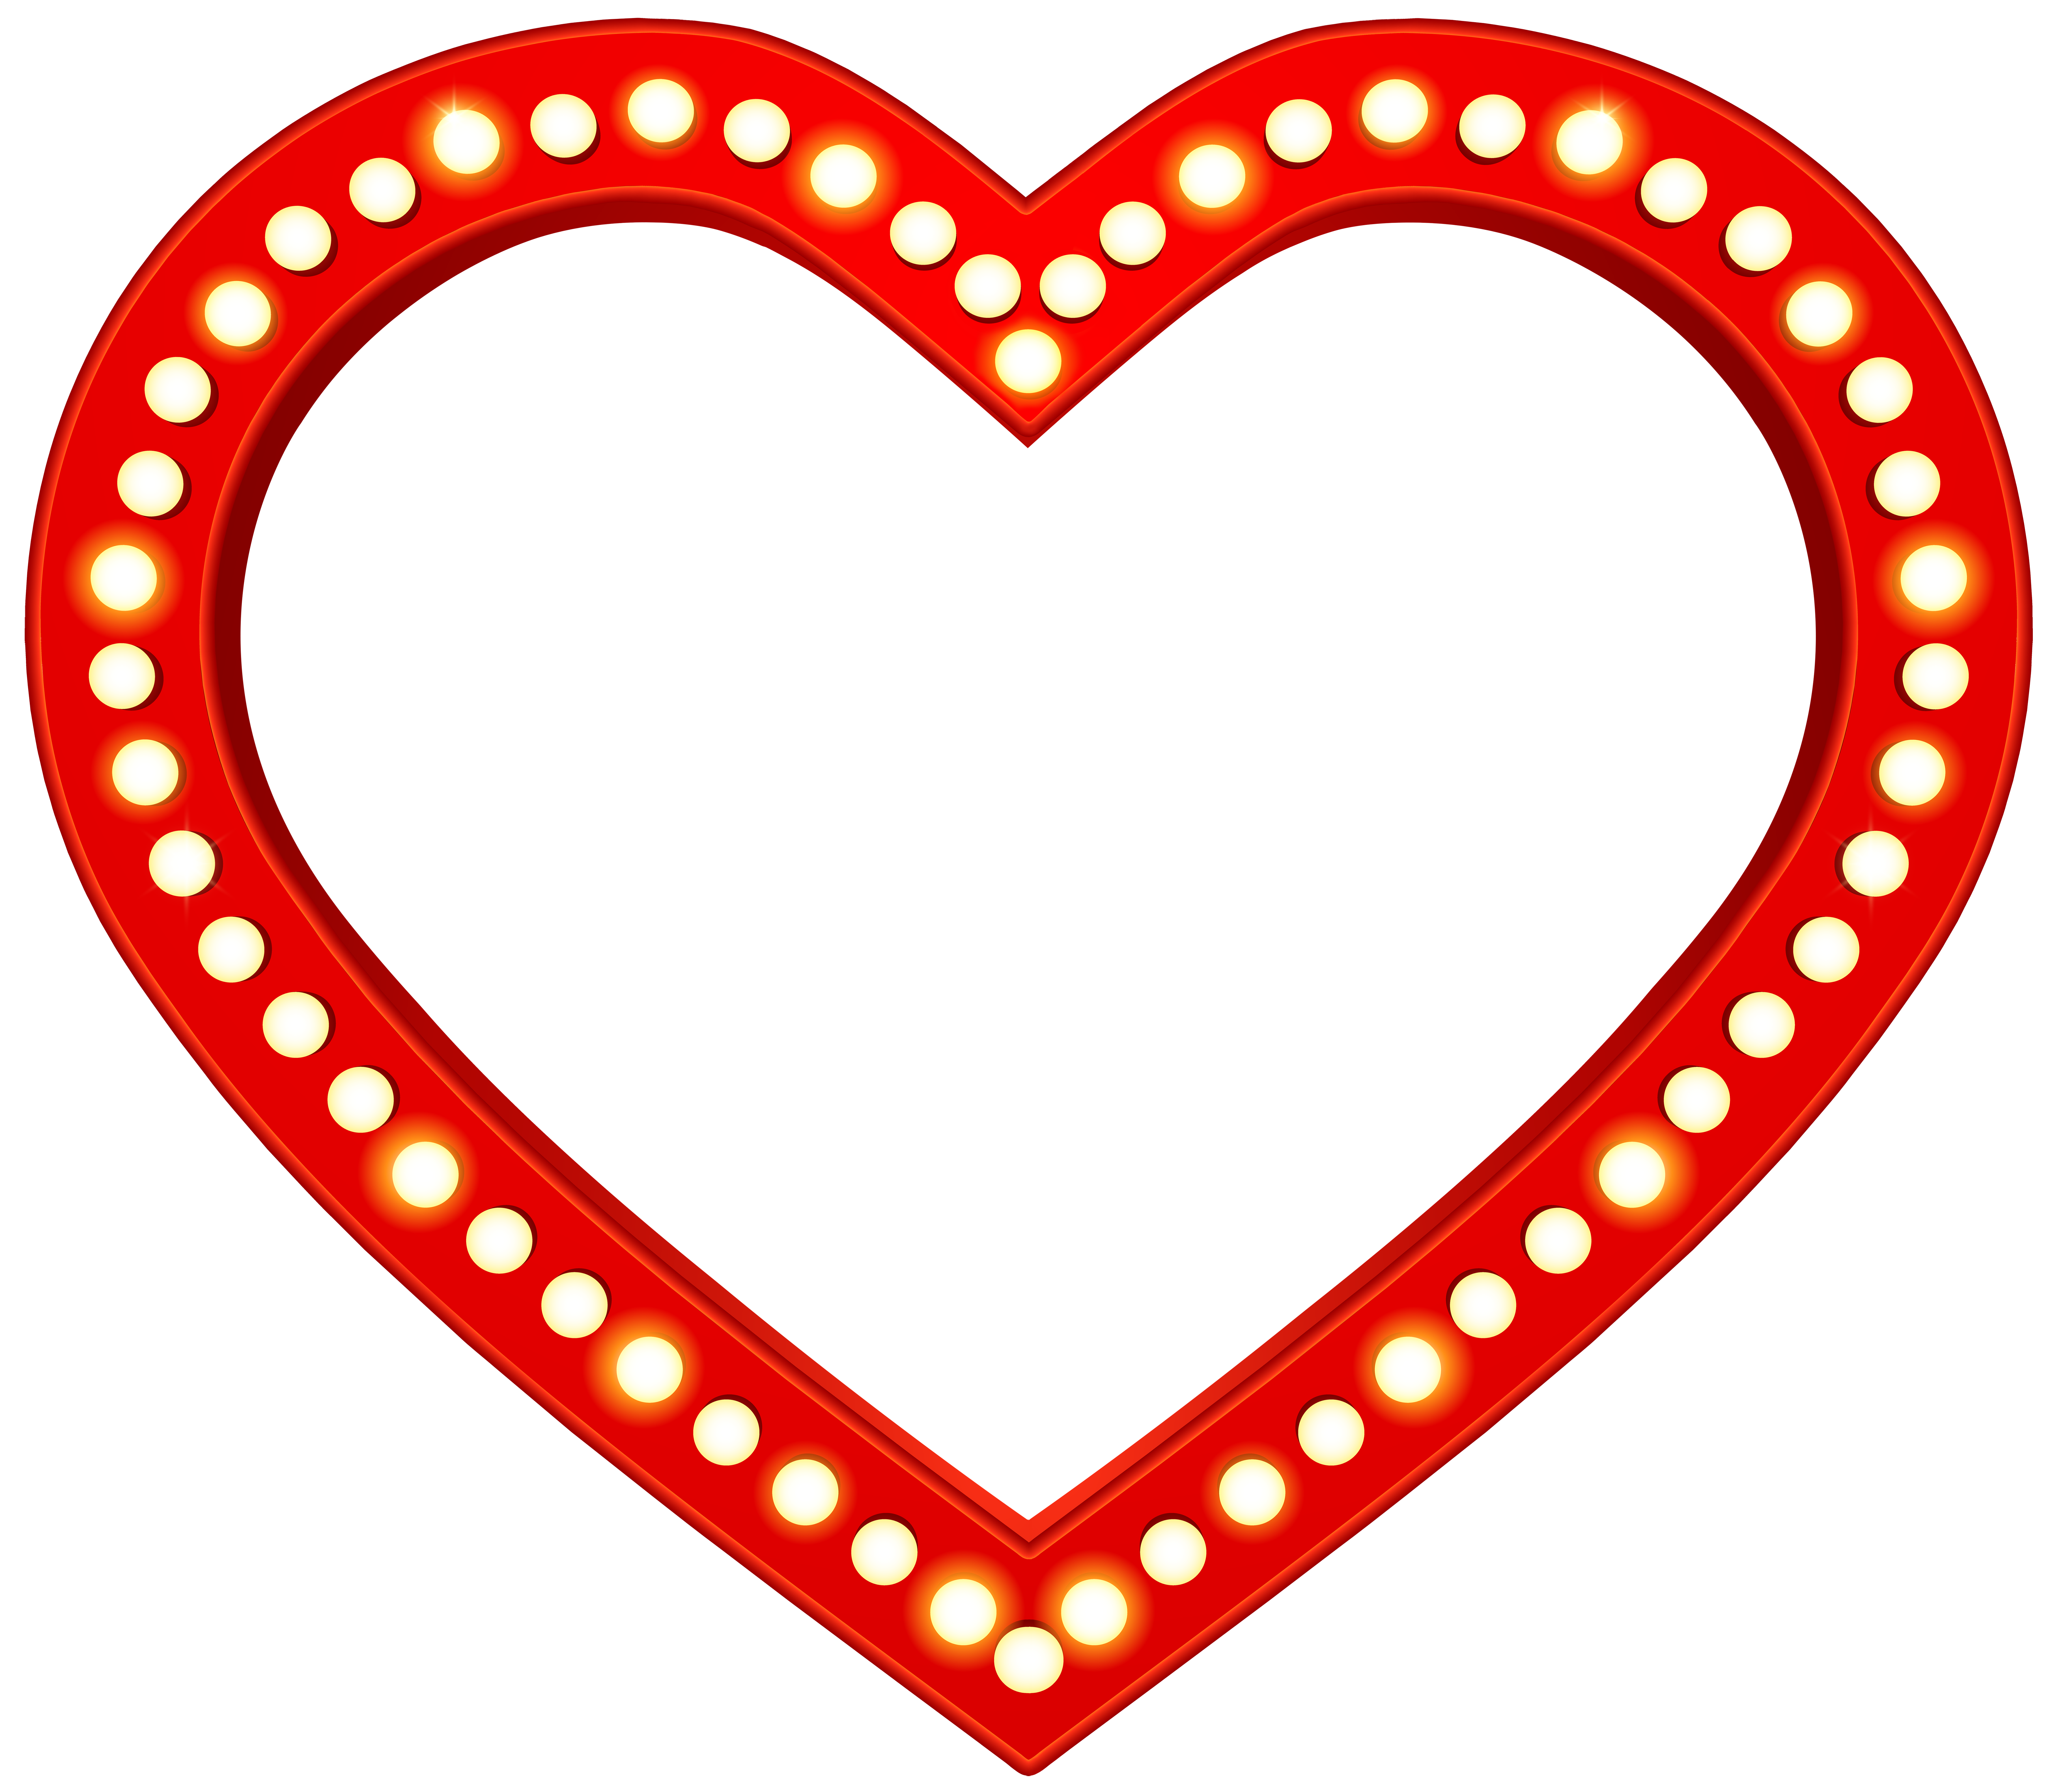 Piano clipart heart. Valentines day for kids